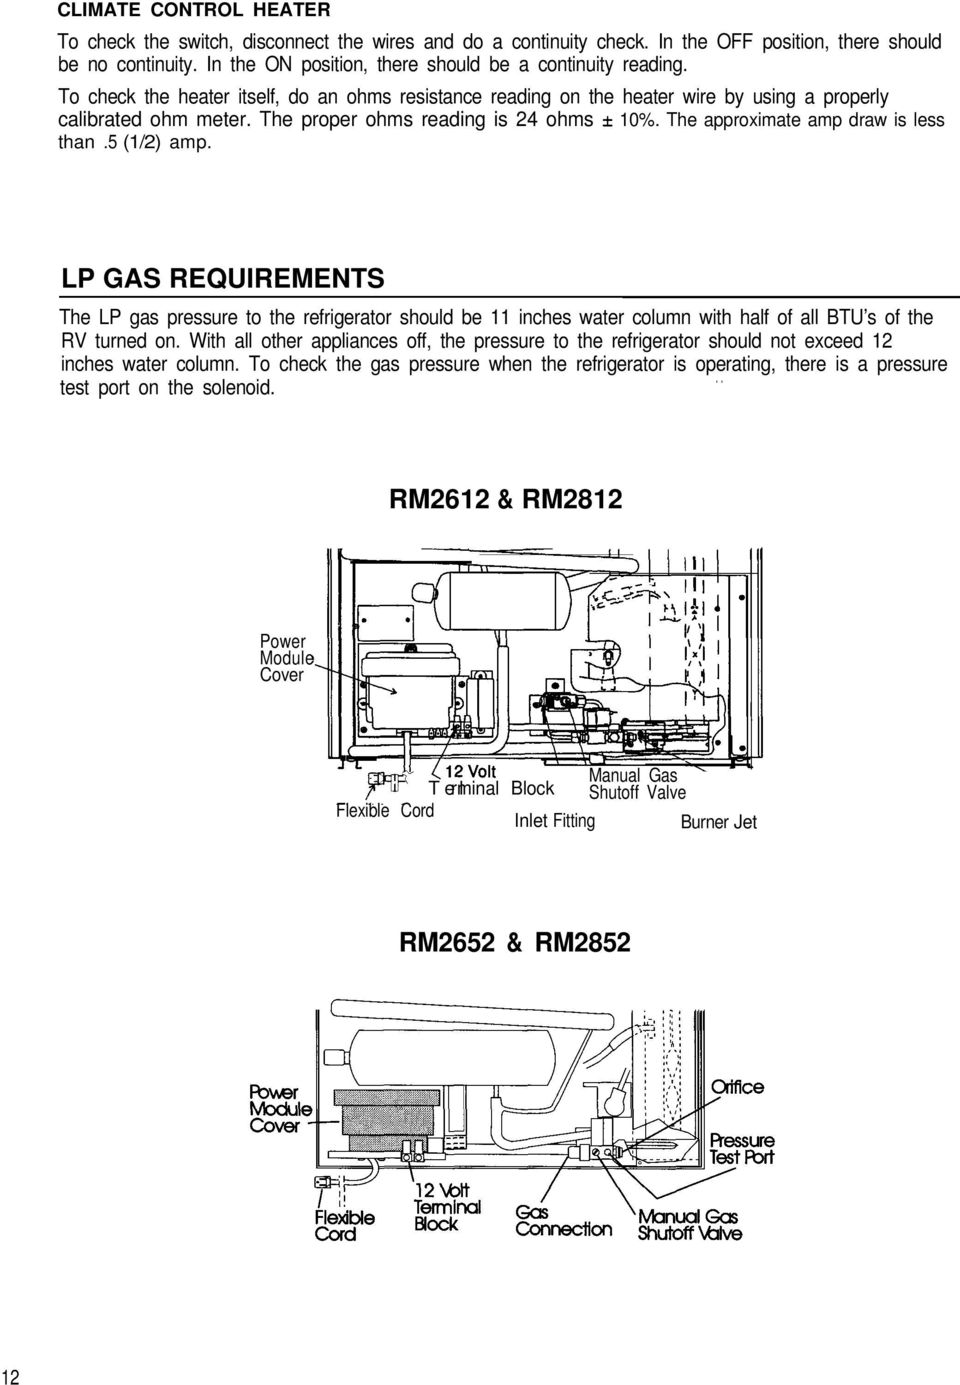 Service Tips Dometic Refrigerators Models Os1927 4 96 Copyright Rm2652 Wiring Schematic The Proper Ohms Reading Is 24 10 Approximate Amp Draw Less